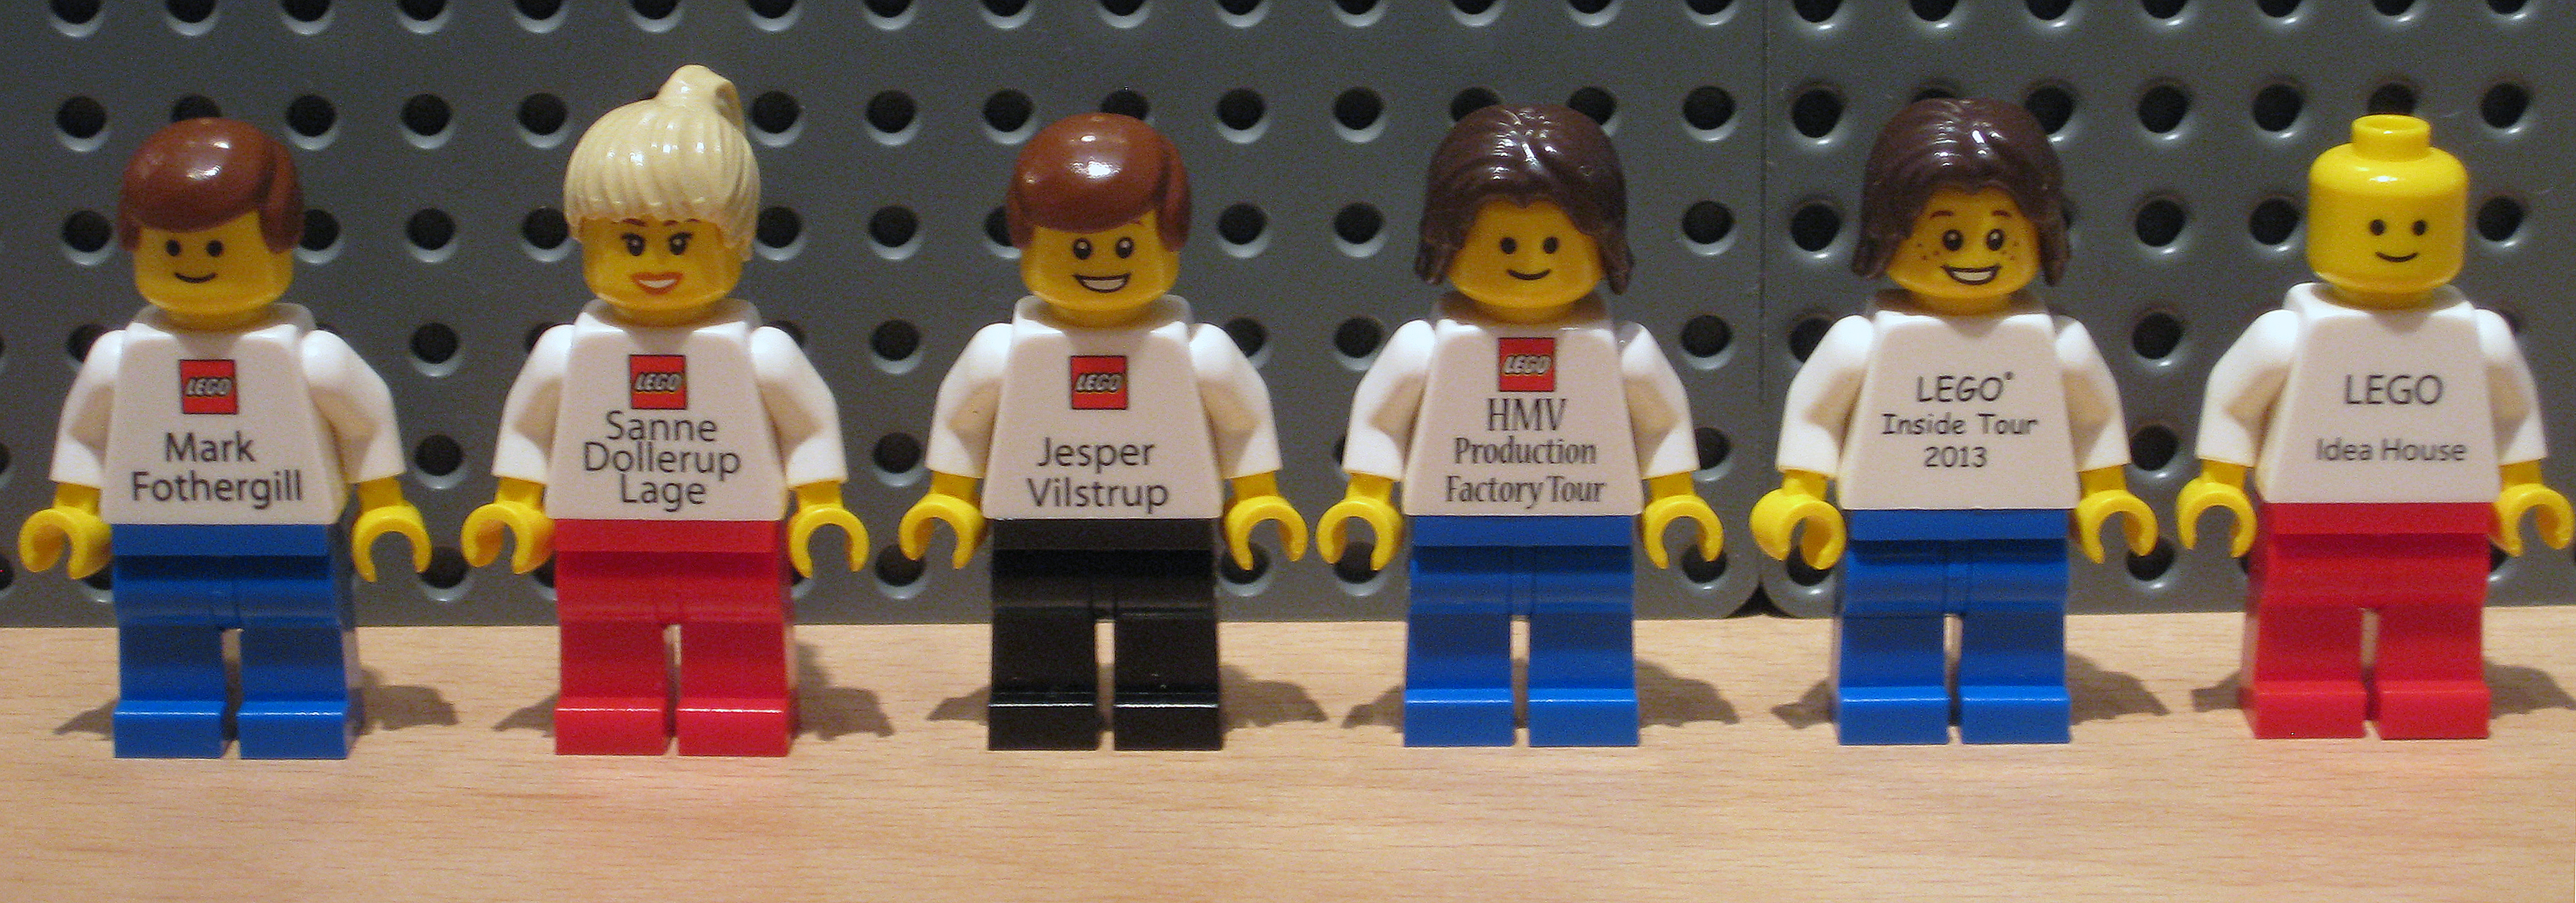 Three more employee business cards minifigure images found ...